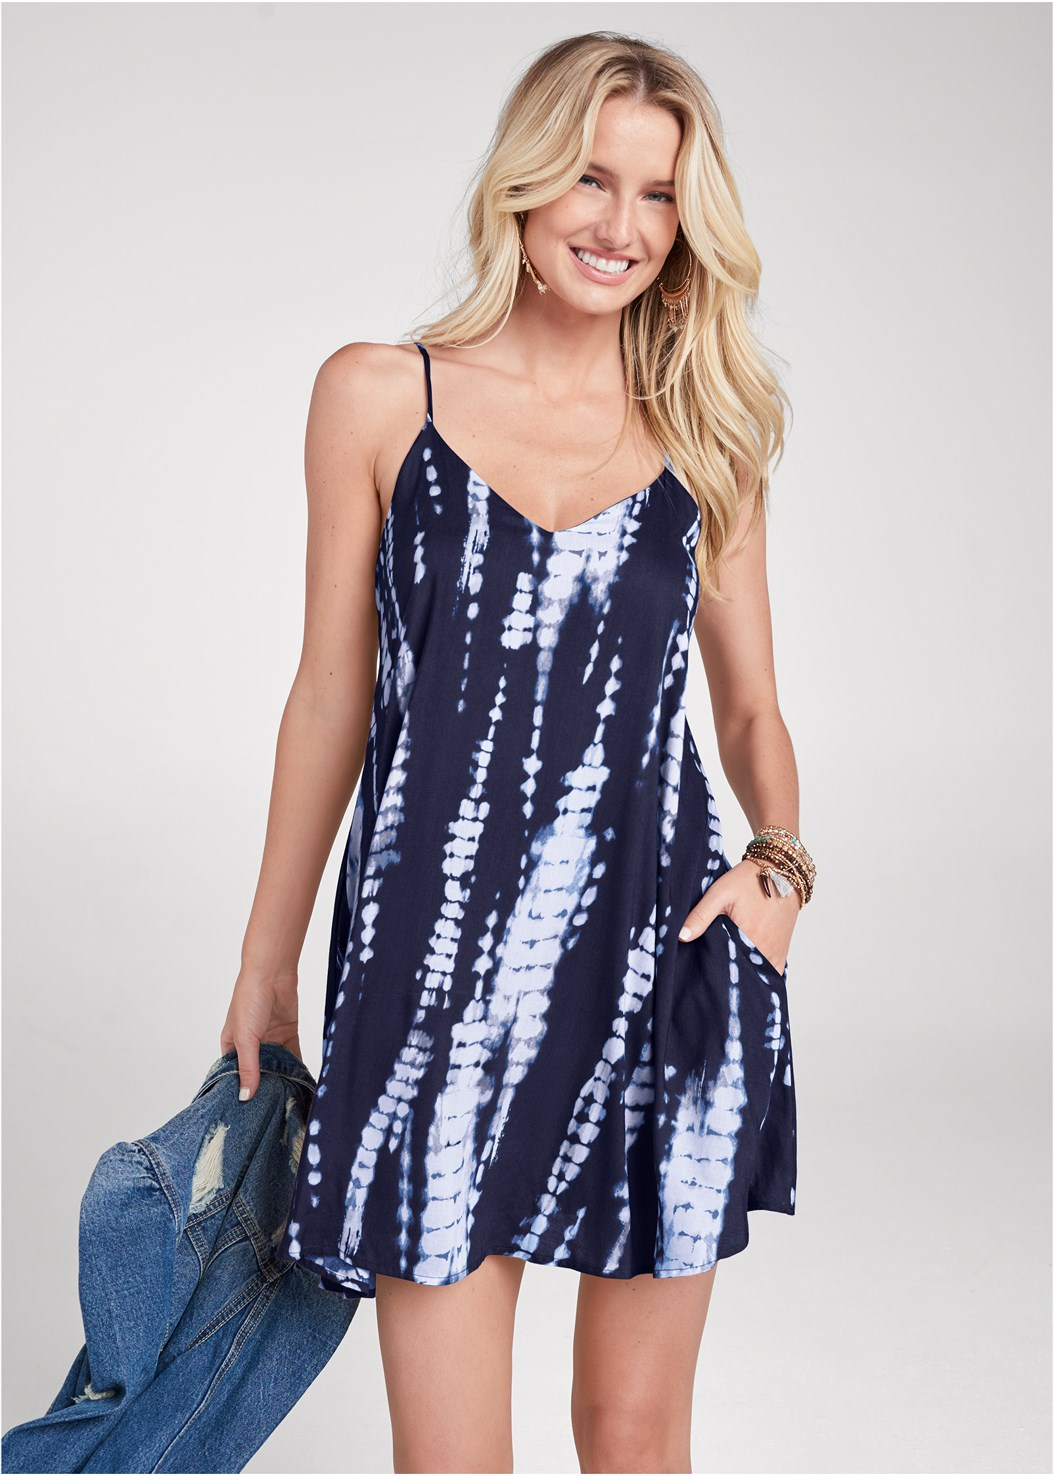 Tie Dye V-Neck Shift Dress,Strapless Bra With Geo Lace,Lace Up Gladiator Sandals,Stackable Beaded Bracelet,Tassel Hoop Earring